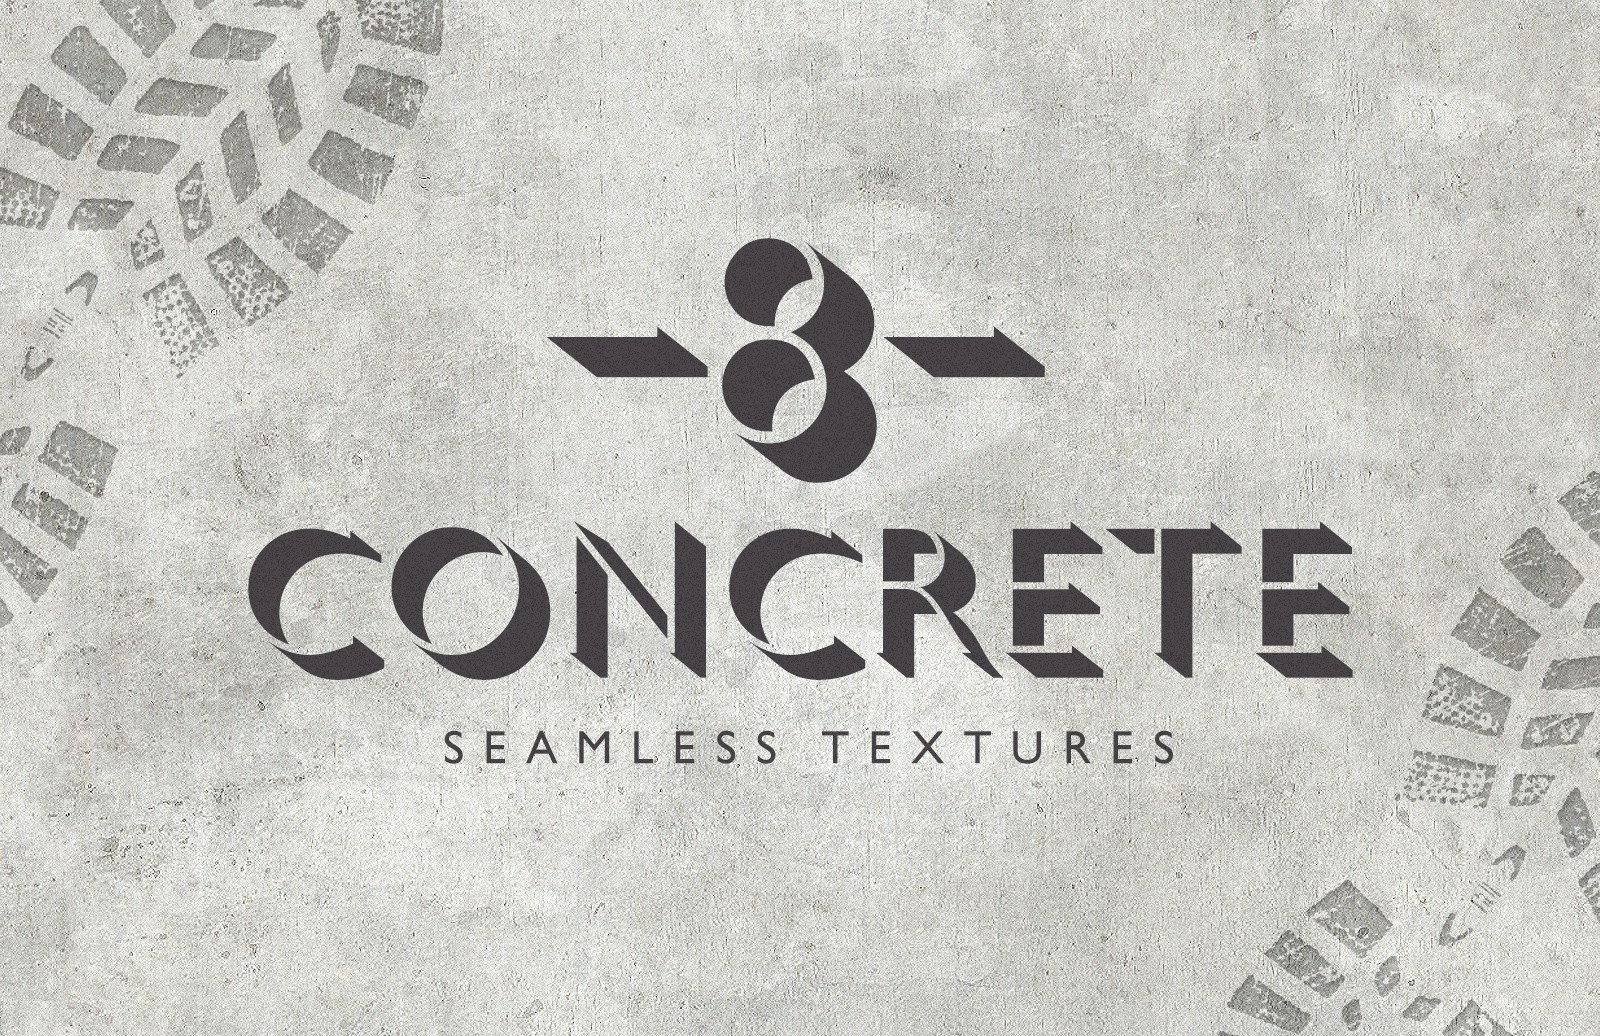 Seamless  Concrete  Textures  Preview 1A